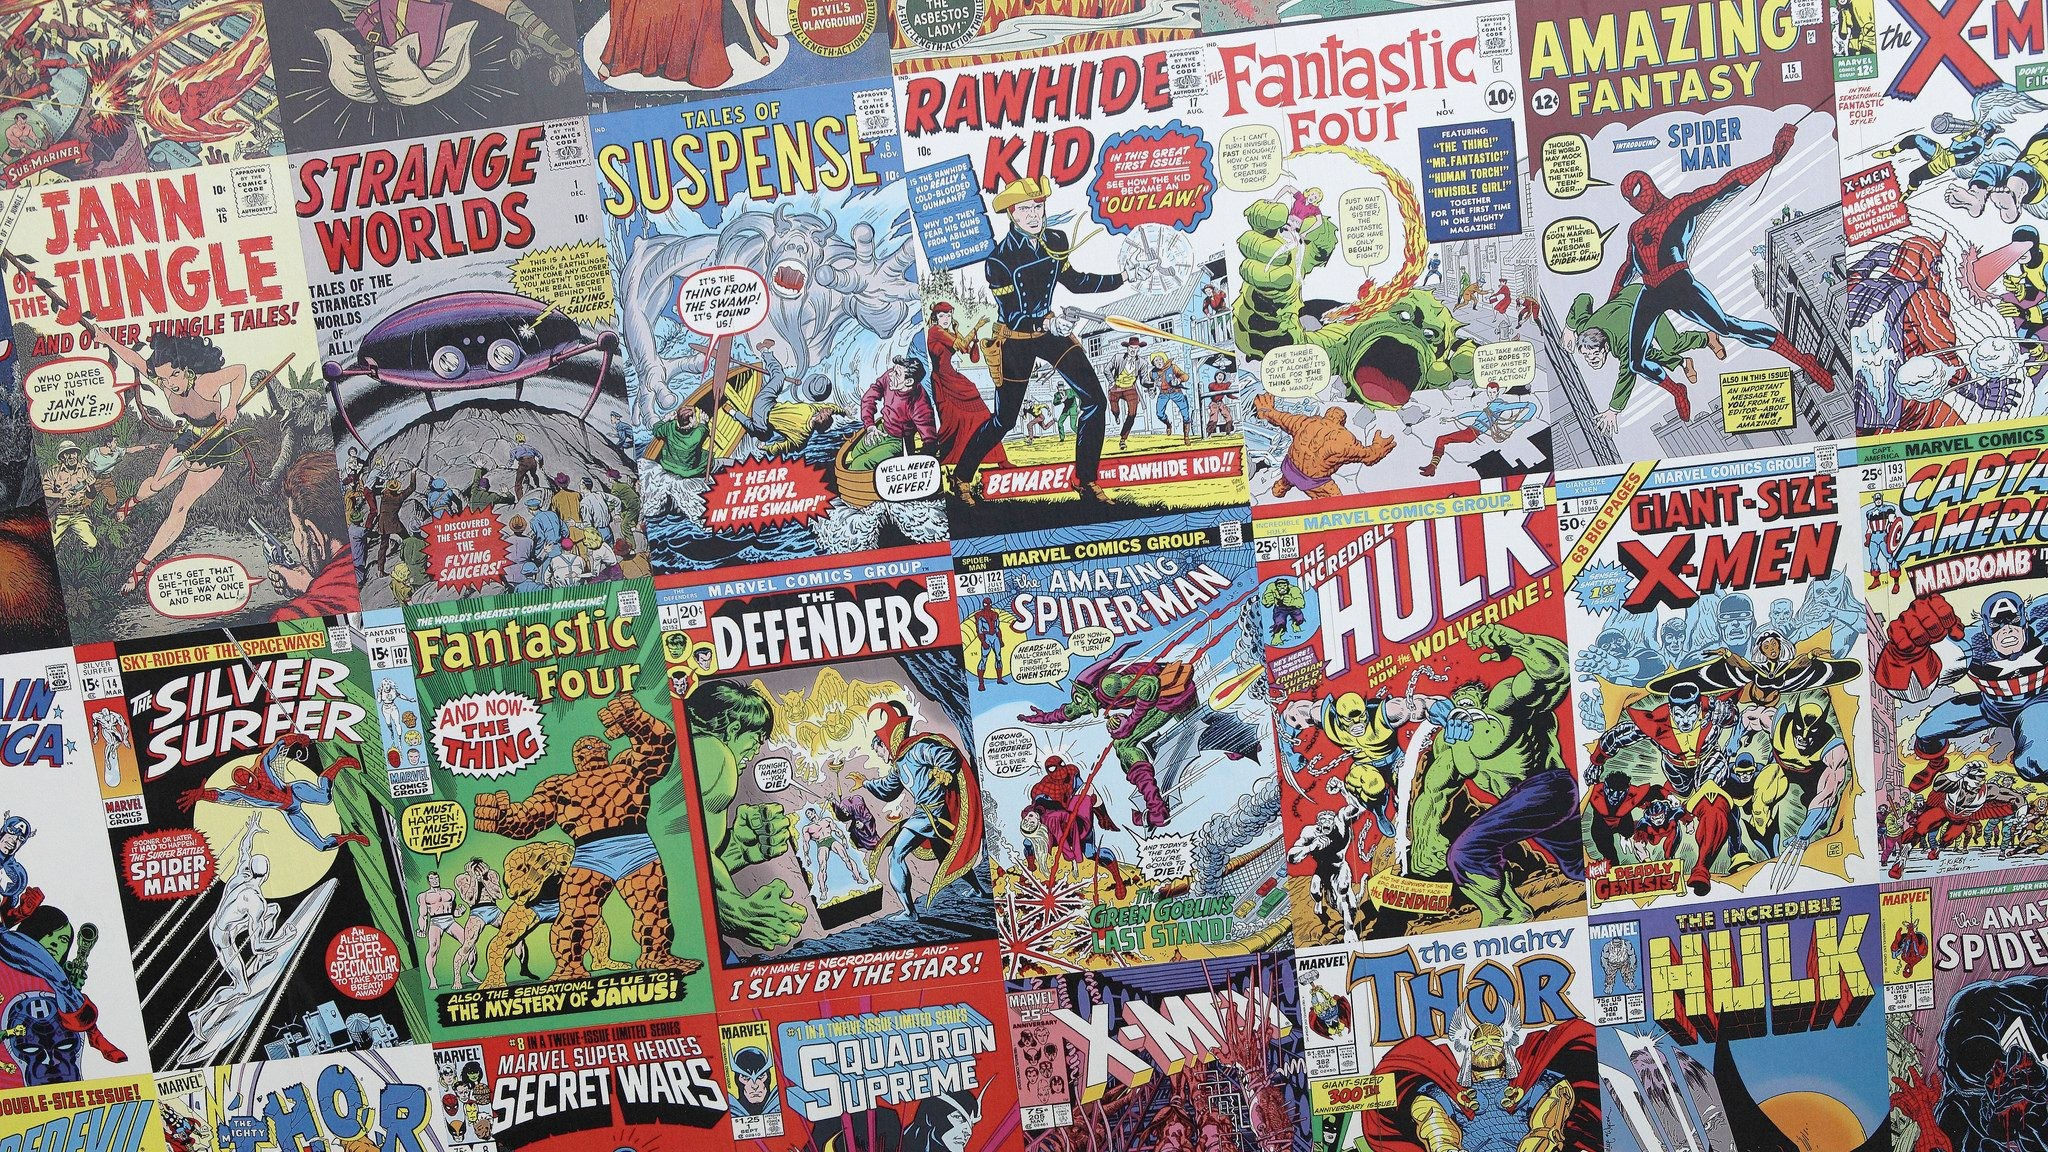 A look at comic prices and price inflation over the years | Diverse Tech  Geek